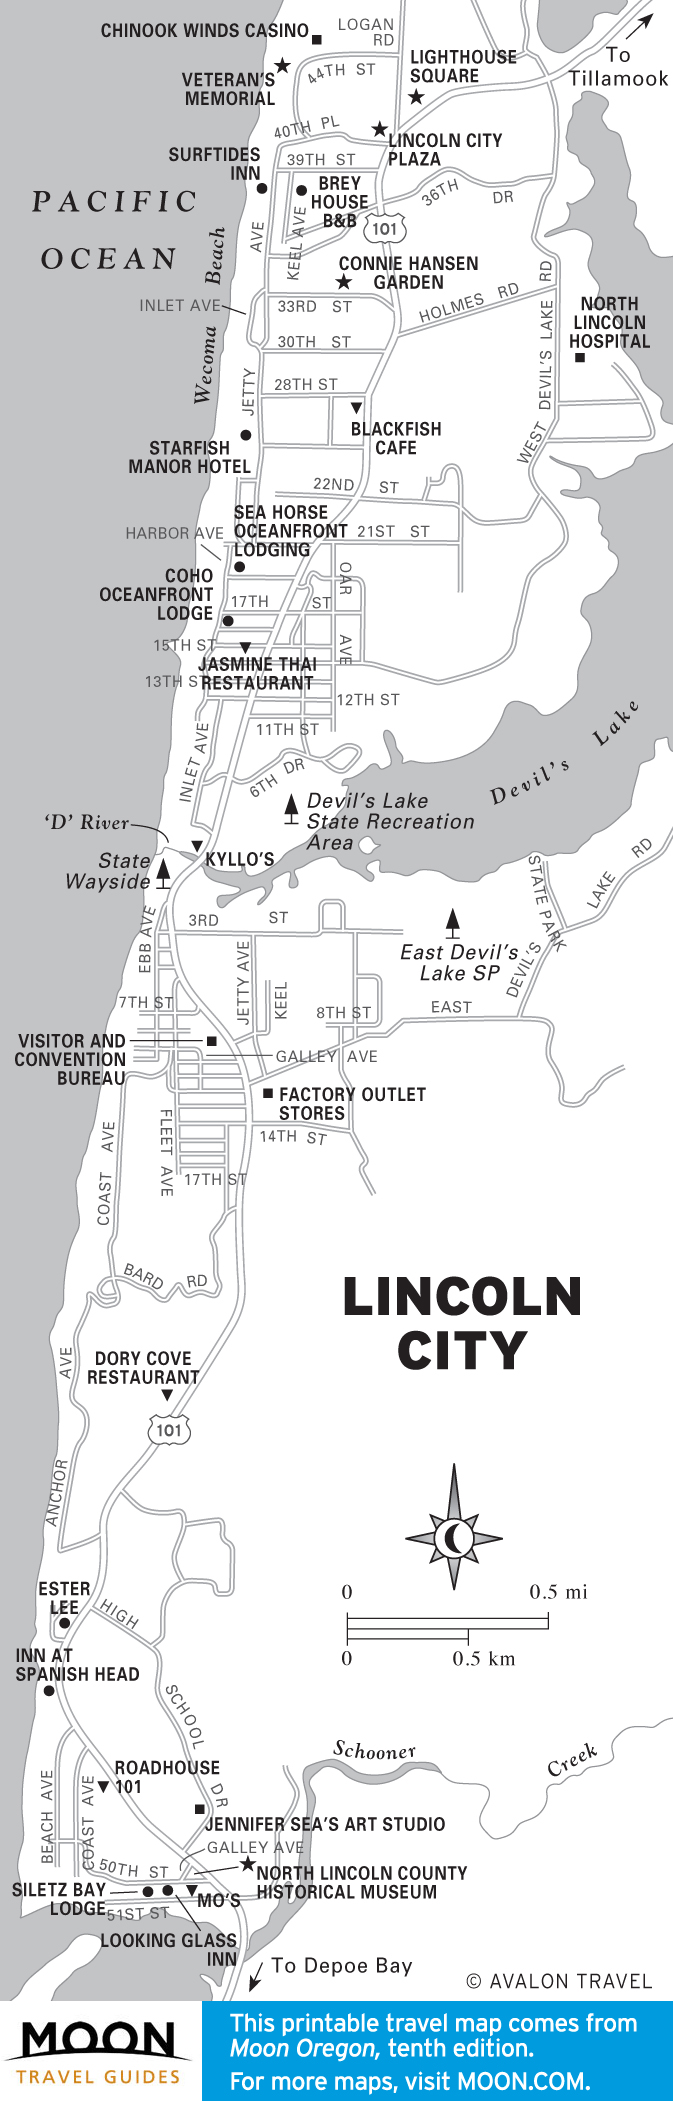 Things to Do in Lincoln City, OR | Moon Travel Guides on map of oakland california, map of kansas city mo, map of astoria ny, map of lincoln rhode island, map of steamboat springs lodging, map of panama city, map of seattle washington, map of center city philadelphia, map of old quebec city, map of san francisco airport hotels, map of ancient rome city, map of london city, map of sunriver or, map of atlantic city boardwalk, map of atlantic city casinos, map of manila city philippines, map of ny city, map of cape cod hotels, map of oklahoma city, map of sioux city iowa,